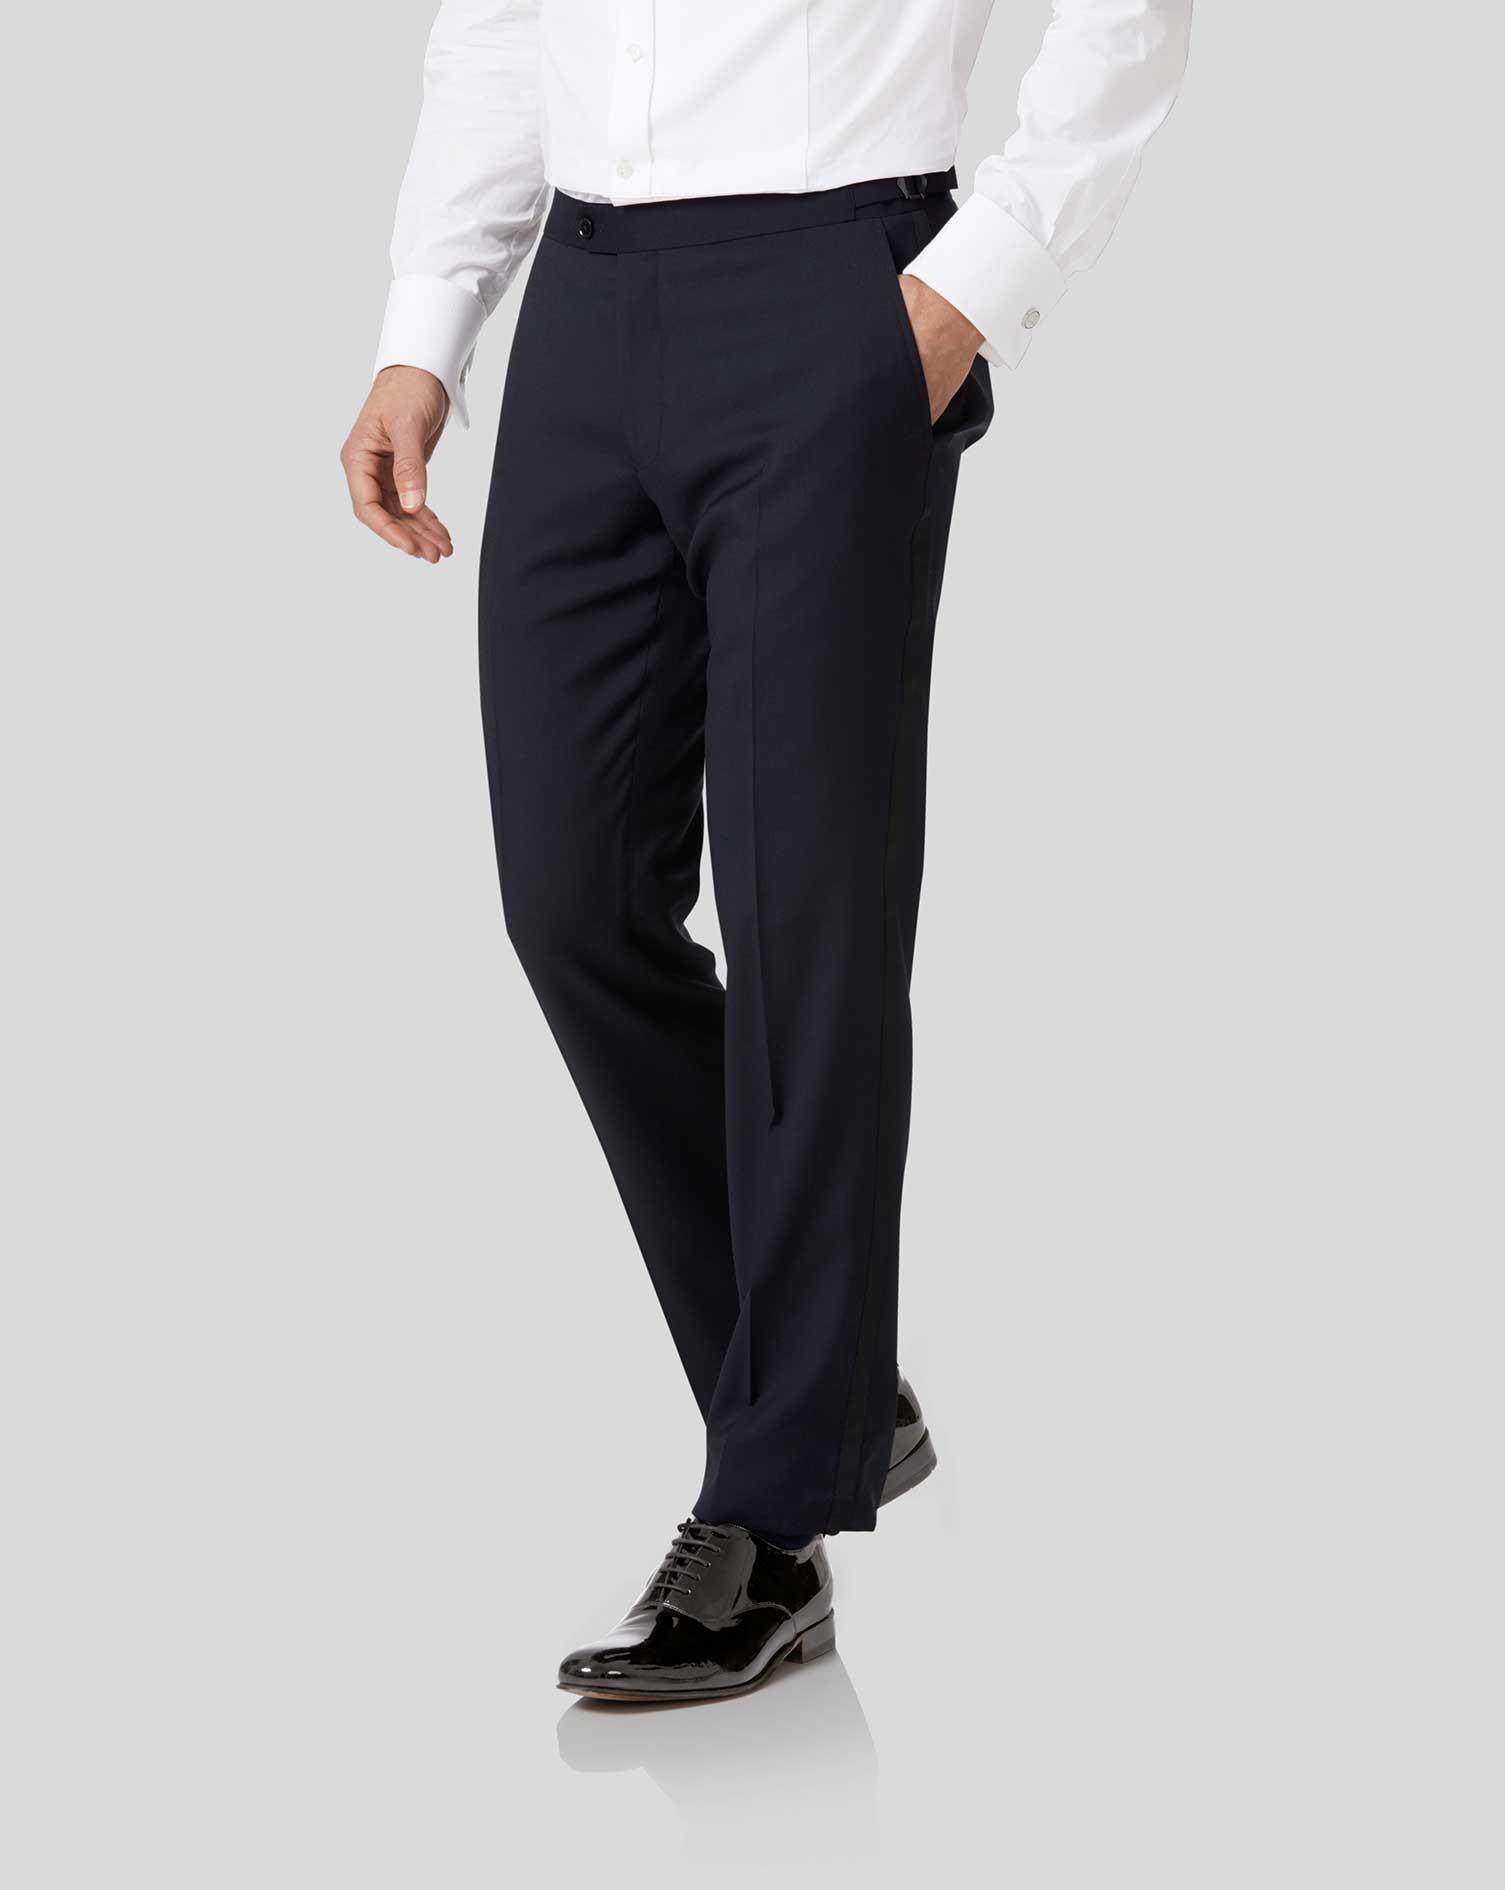 Midnight Blue Slim Fit Tuxedo Trousers Size W36 L32 by Charles Tyrwhitt